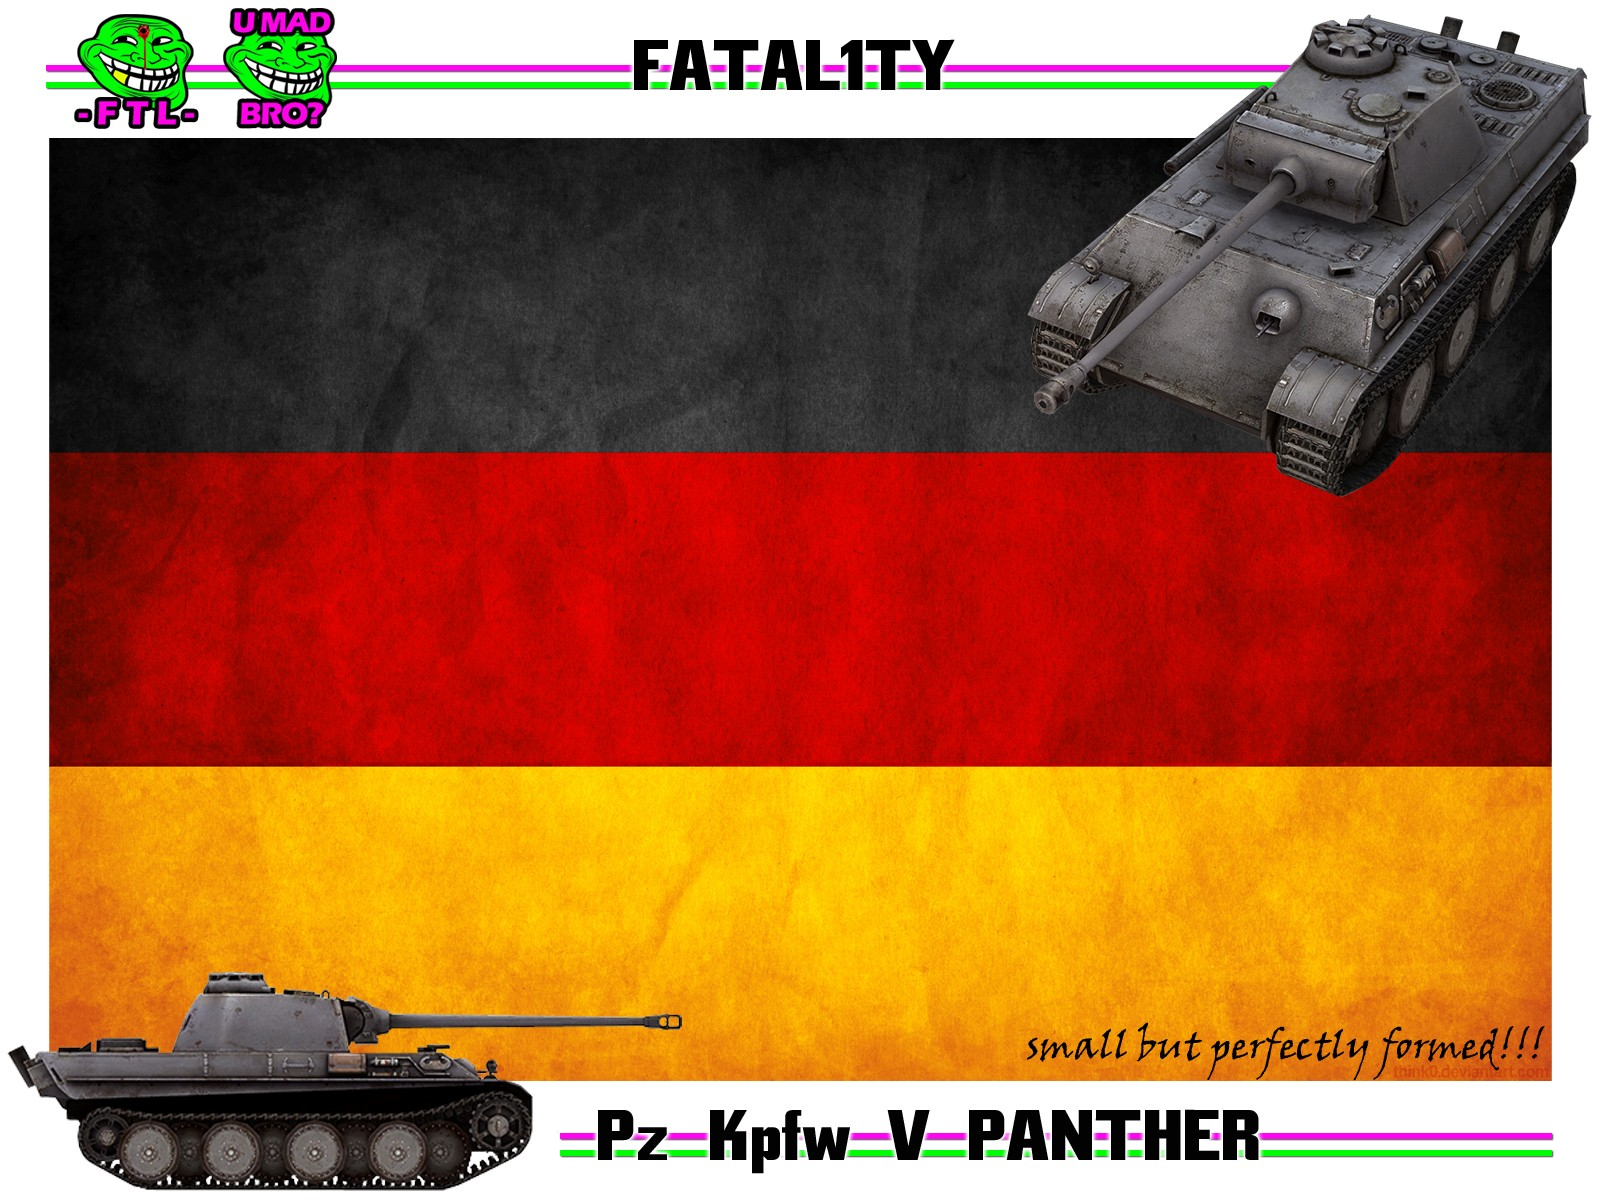 PANTHER MEDIUM TANK FTL FTLTY CLAN WORLD OF TANKS FATALITY FATAL1TY